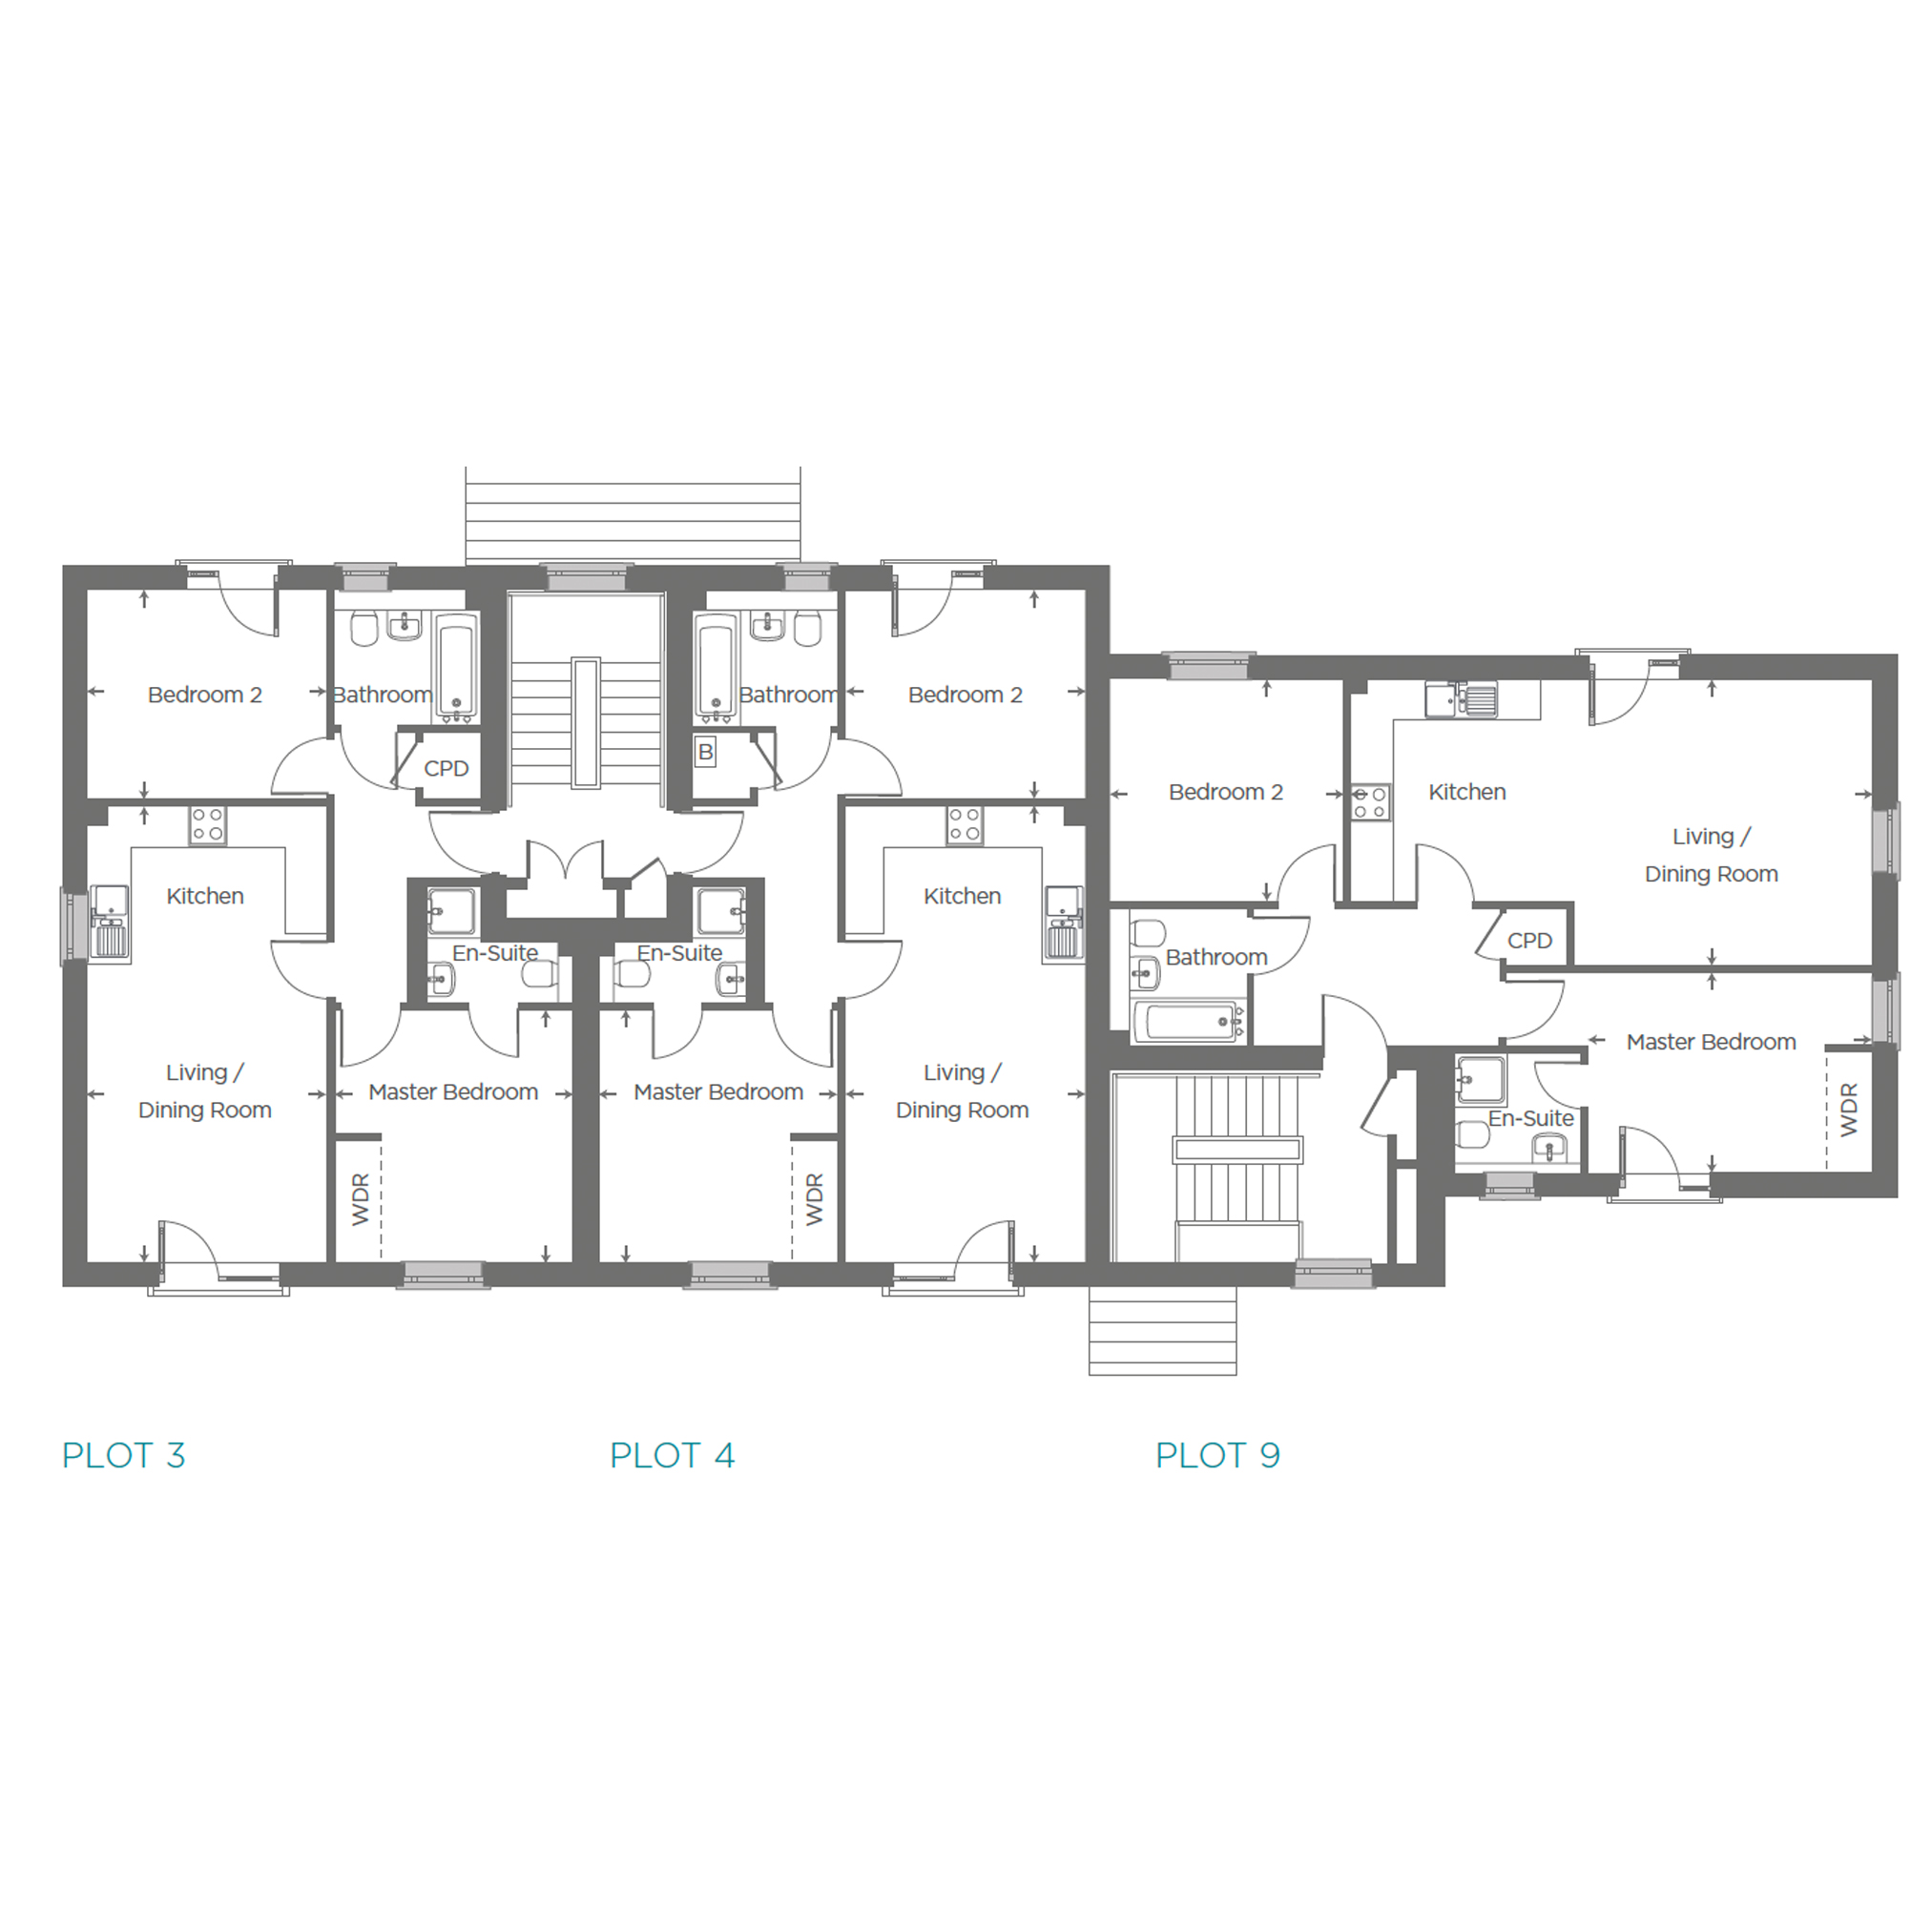 Plot 4 Floor plan